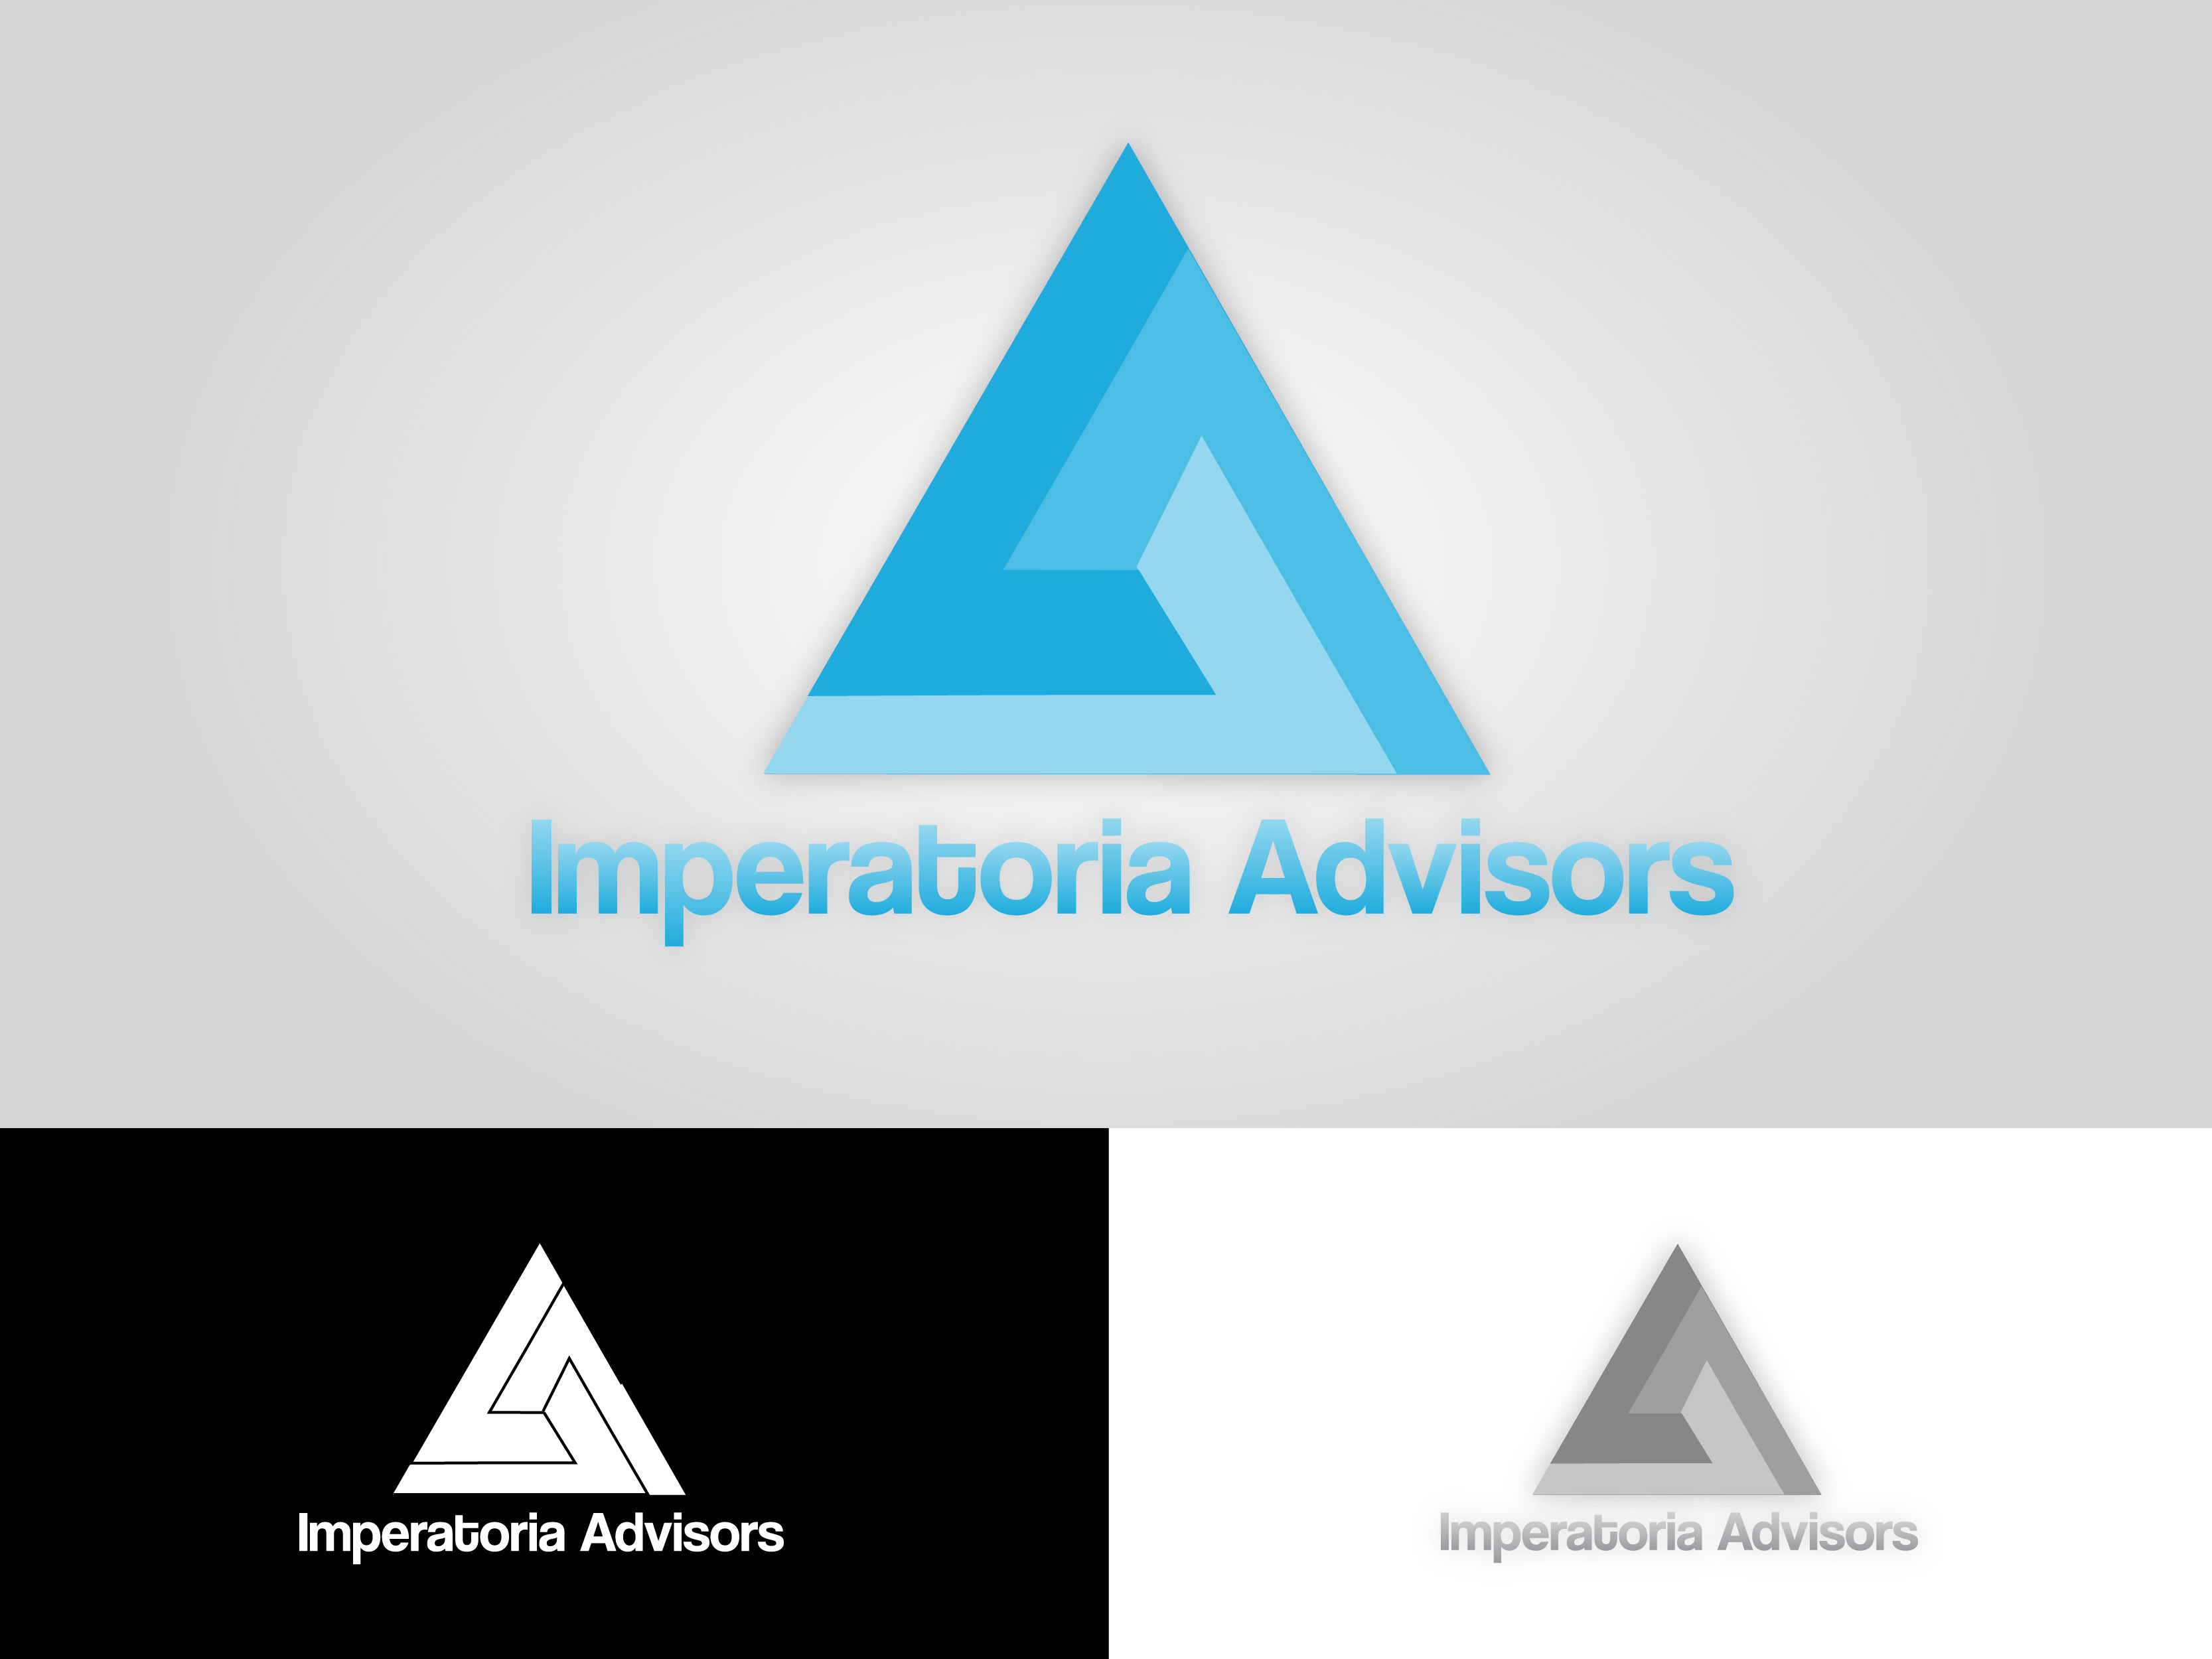 Logo Design by Vase Iliev - Entry No. 89 in the Logo Design Contest Unique Logo Design Wanted for Imperatoria Advisors.